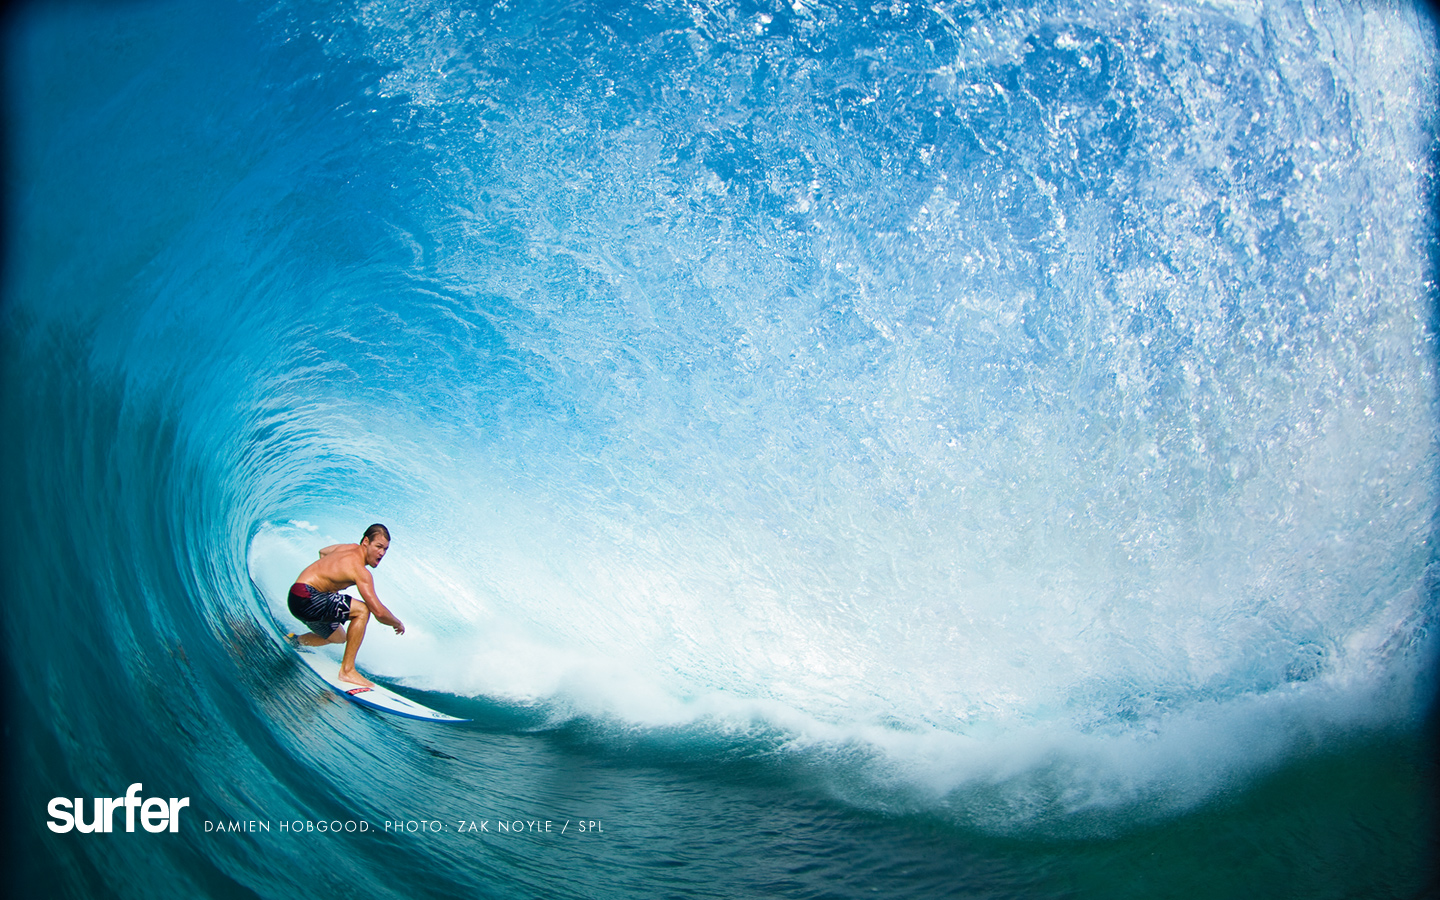 Surfermag Wallpapers HD Walls Find Wallpapers 1440x900